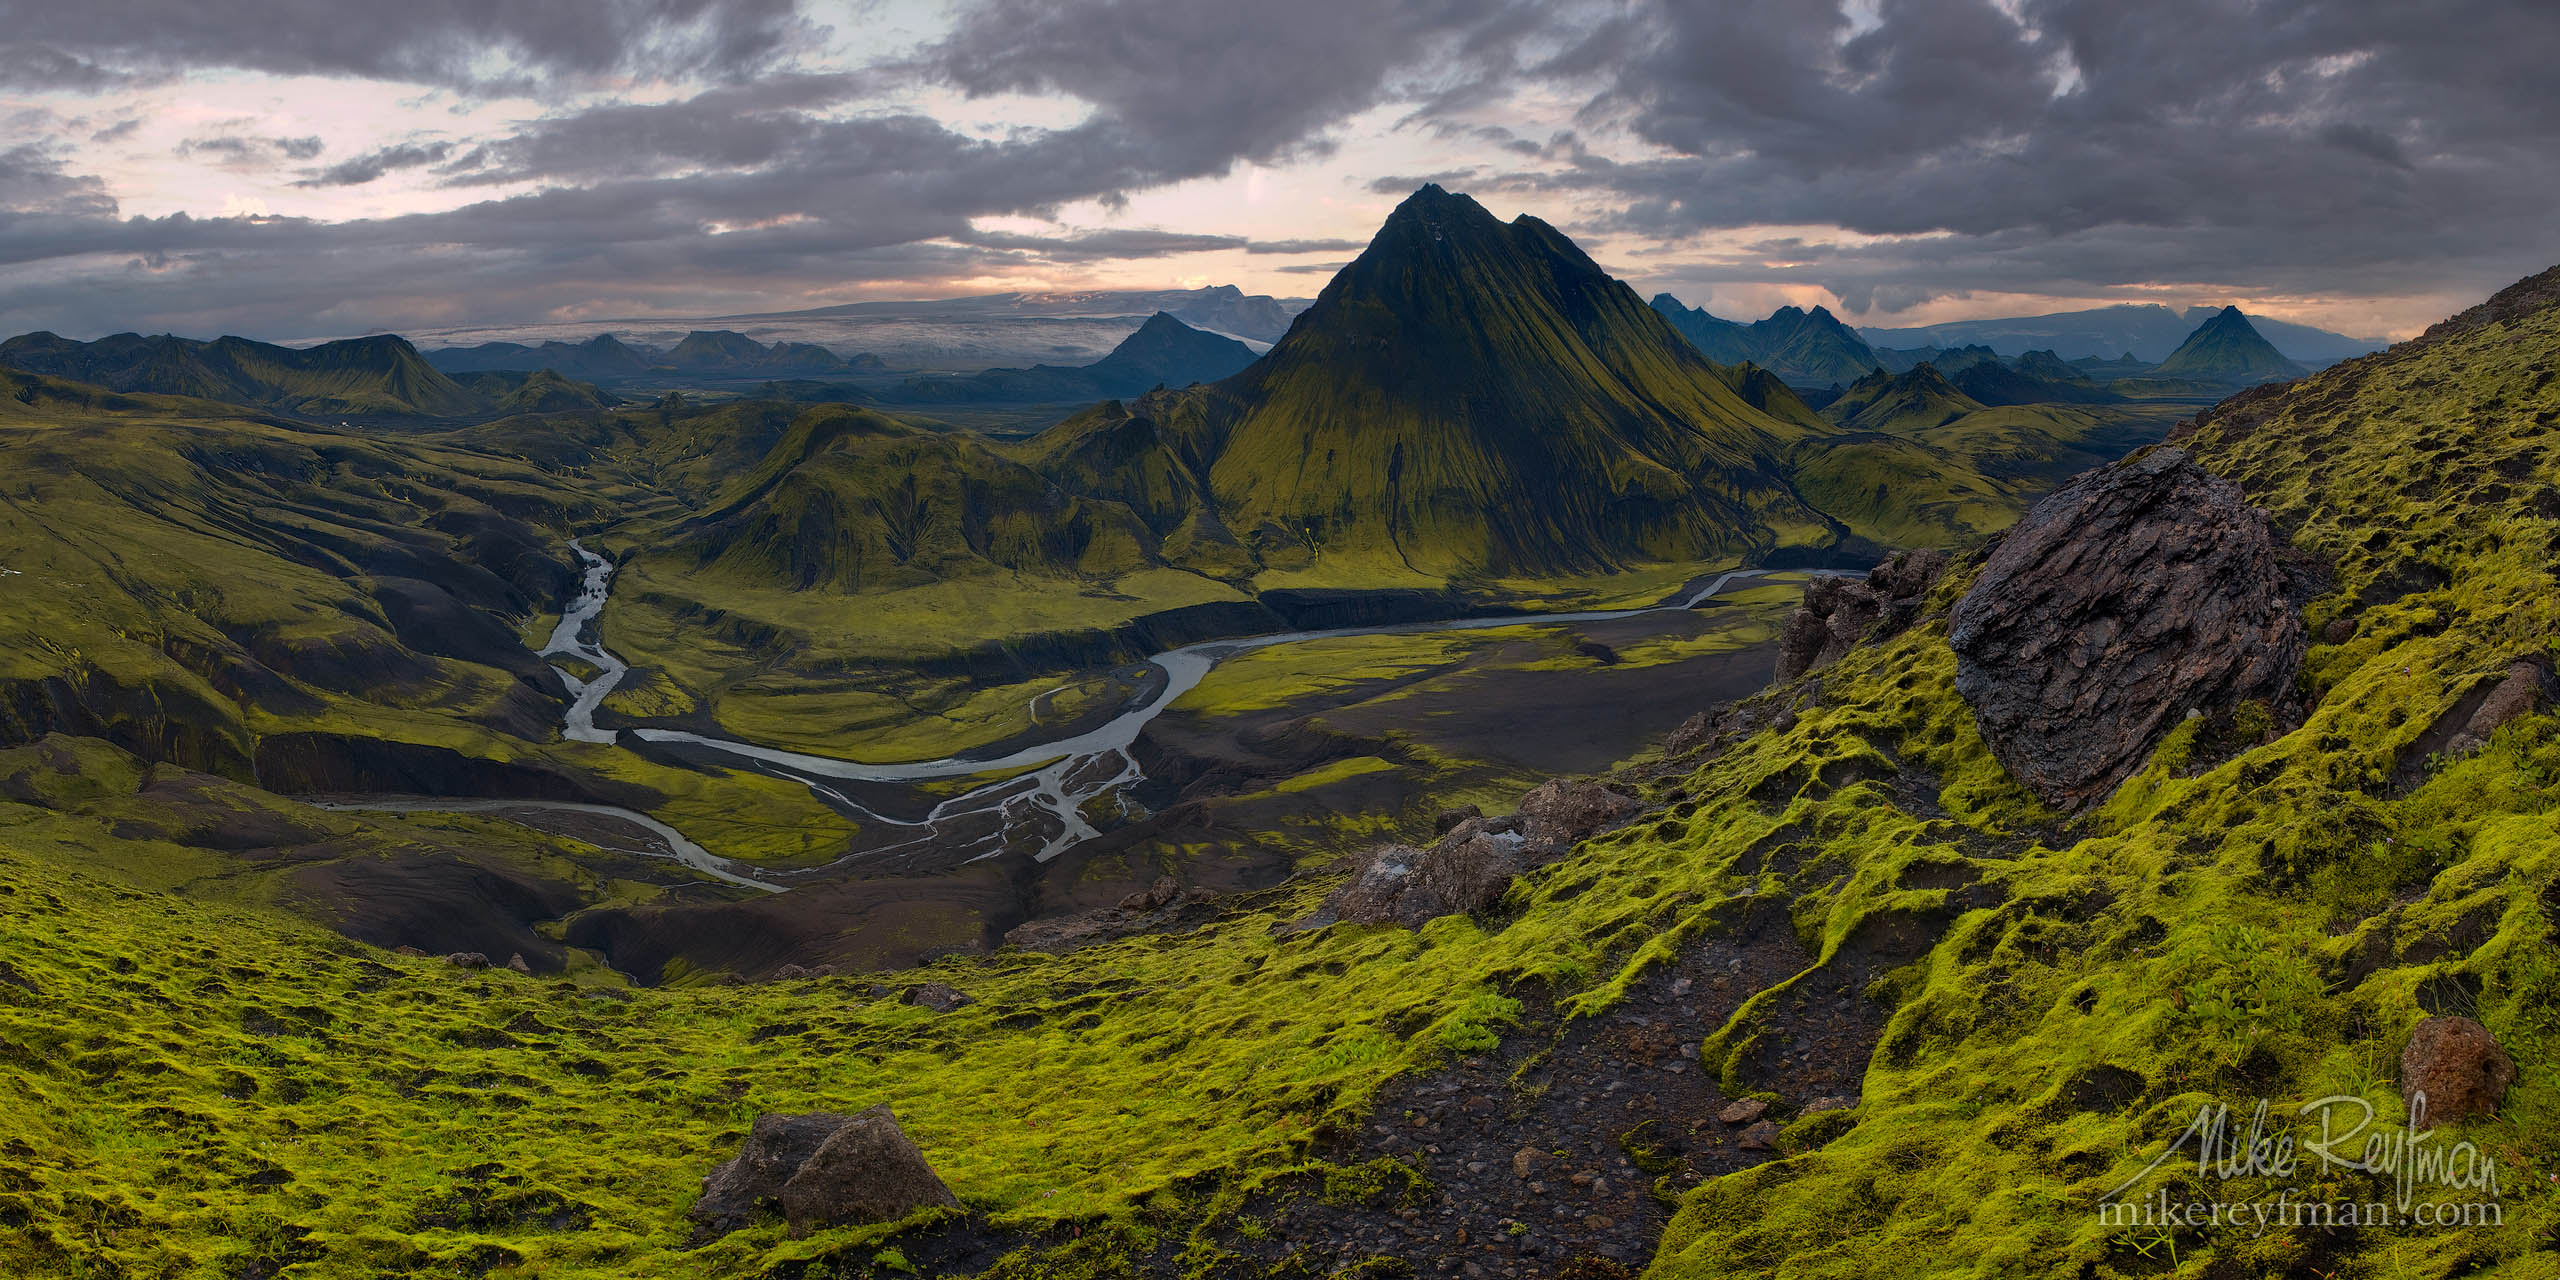 Mt. Storasula, Southern Fjallabak, Iceland P12-MRO3X2951 - Selected panoramic images with 2:1 aspect ratio - Mike Reyfman Photography